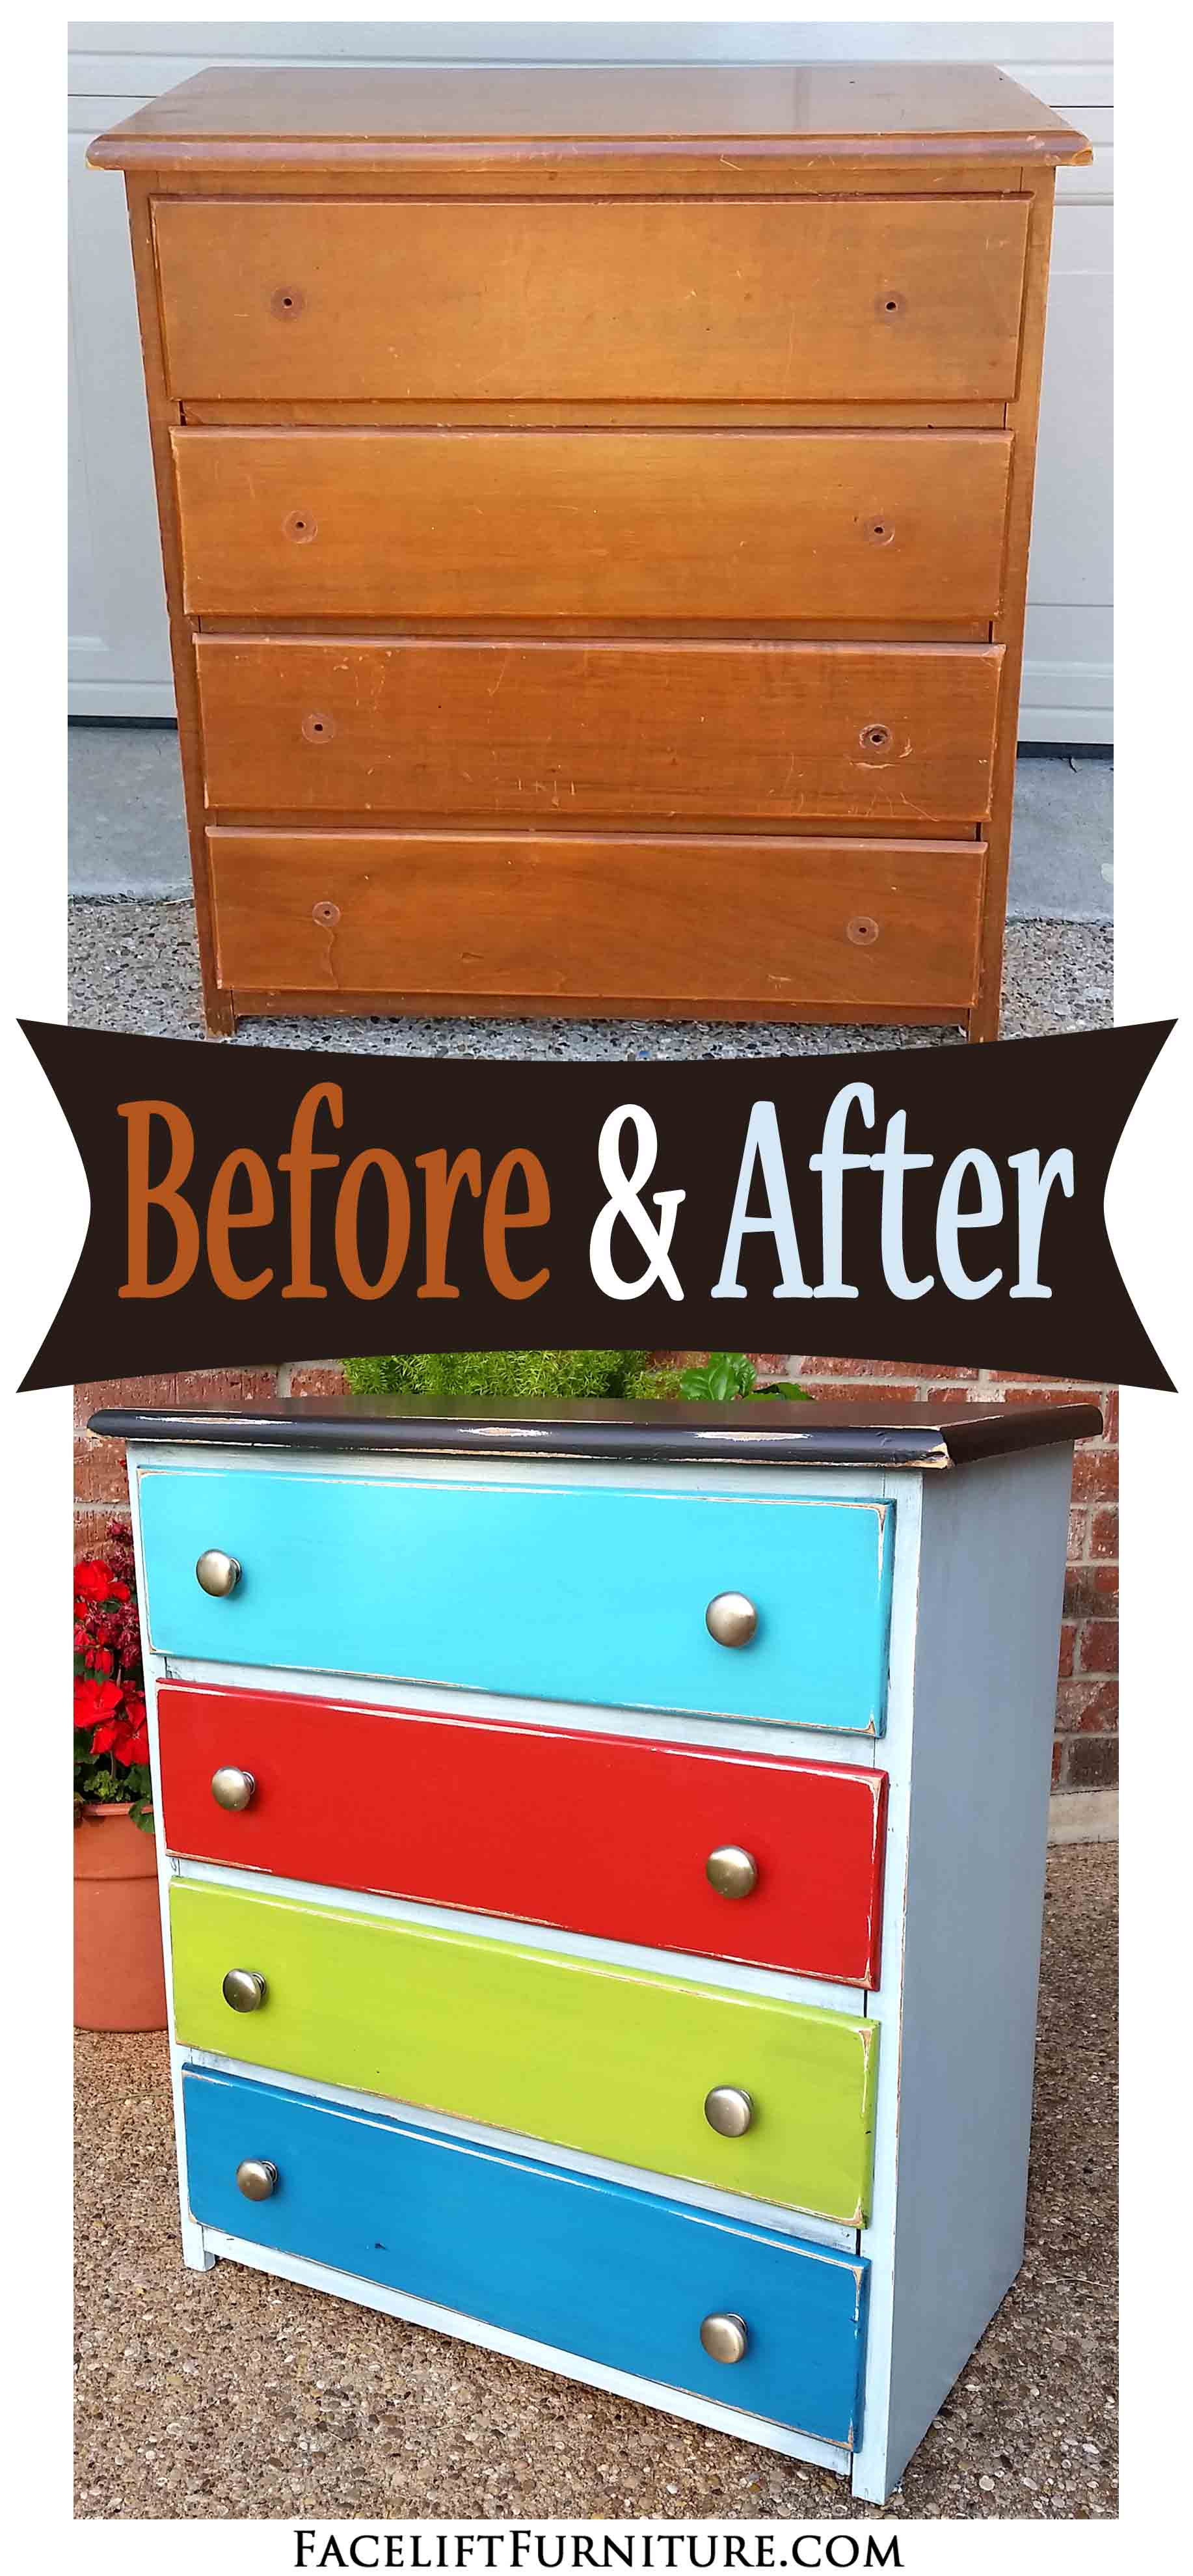 Painting furniture before and after - This Simple Nightstand Was Repurposed Into A Sewing Storage Cabinet For My Daughter Using Paint Glaze And Distressing